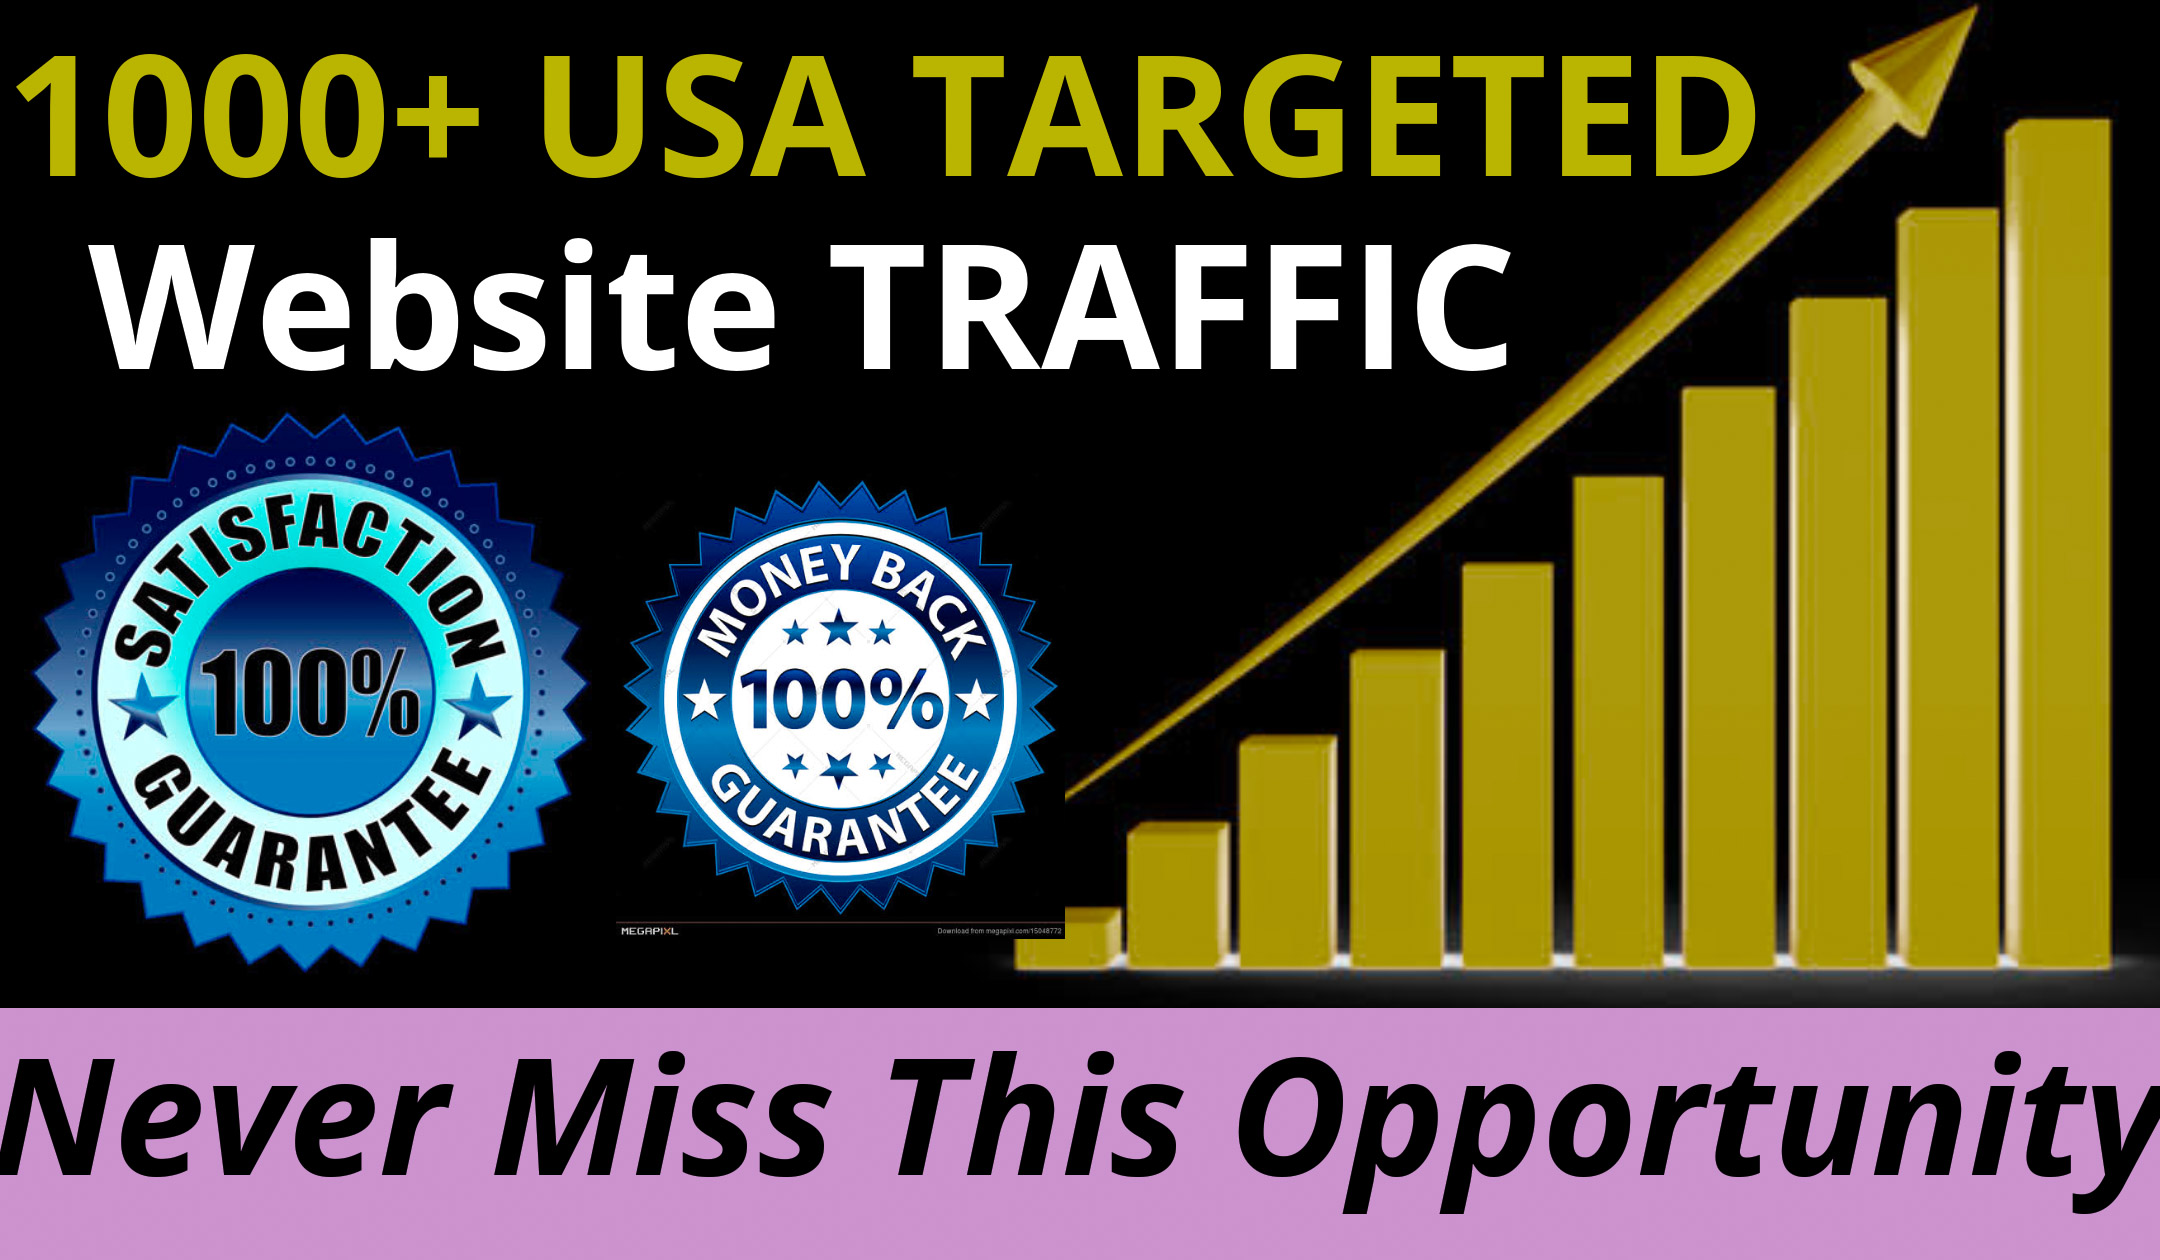 1000+ USA Targeted Website Traffic Within 24 Hours